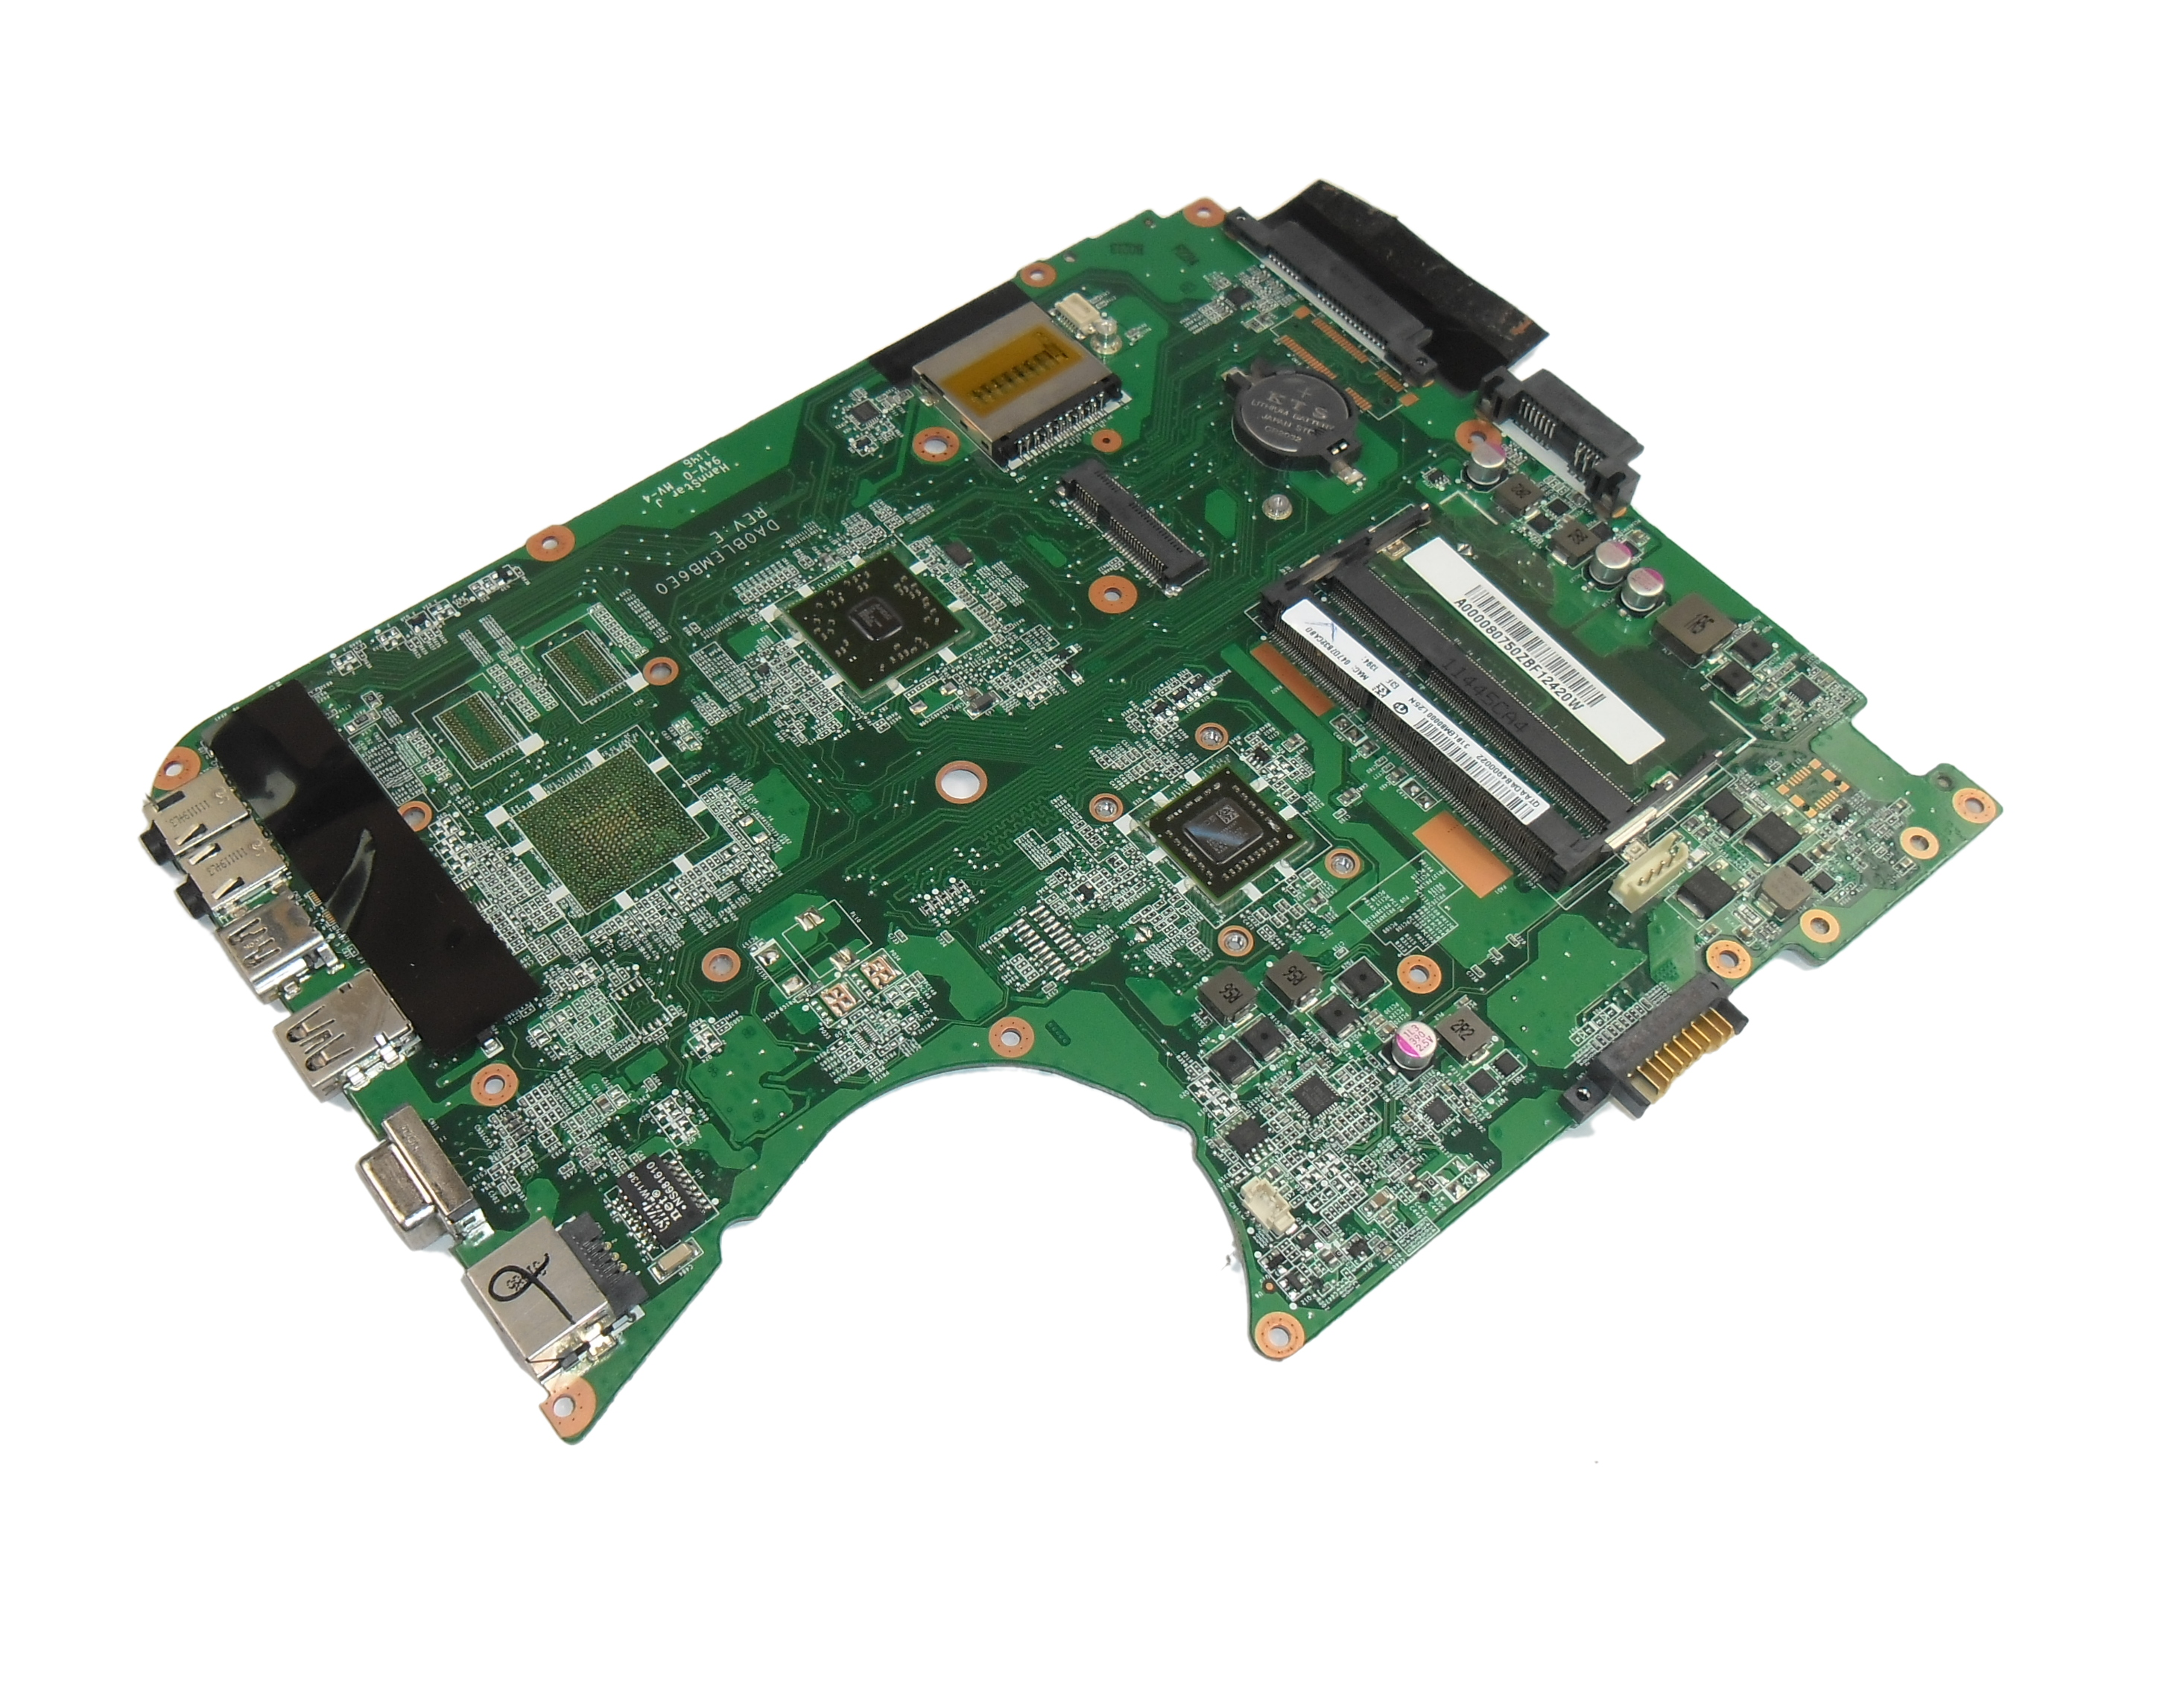 A000080750 Toshiba Satellite L755D Motherboard with AMD E-350 CPU - 31BLEMB0000